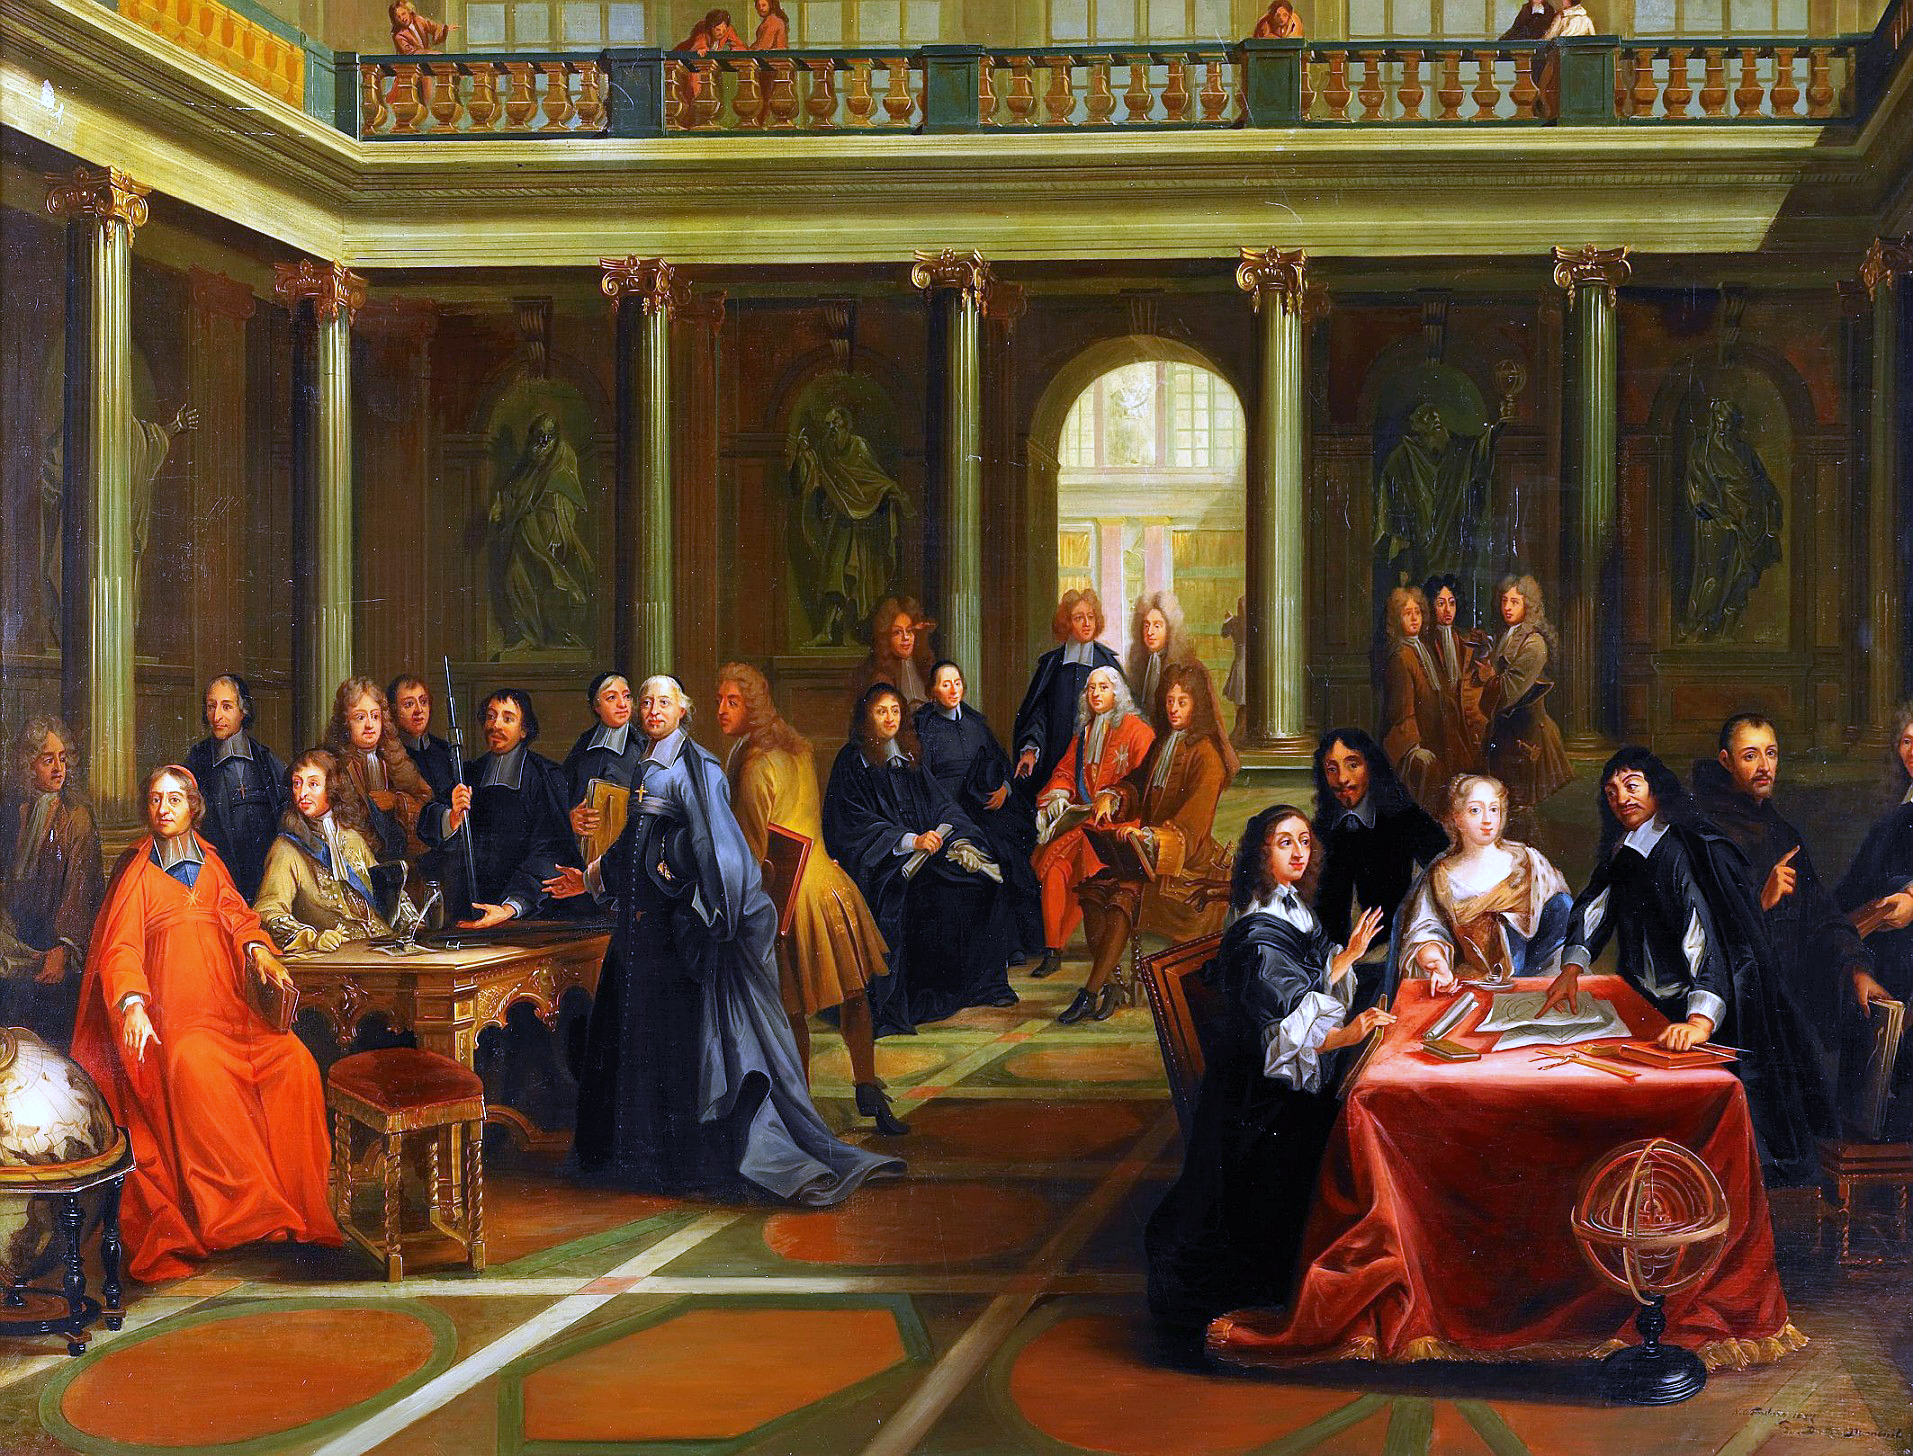 queen christina at the table on the right in discussion queen christina at the table on the right in discussion french philosopher renatildecopy descartes r ticized painting from the century